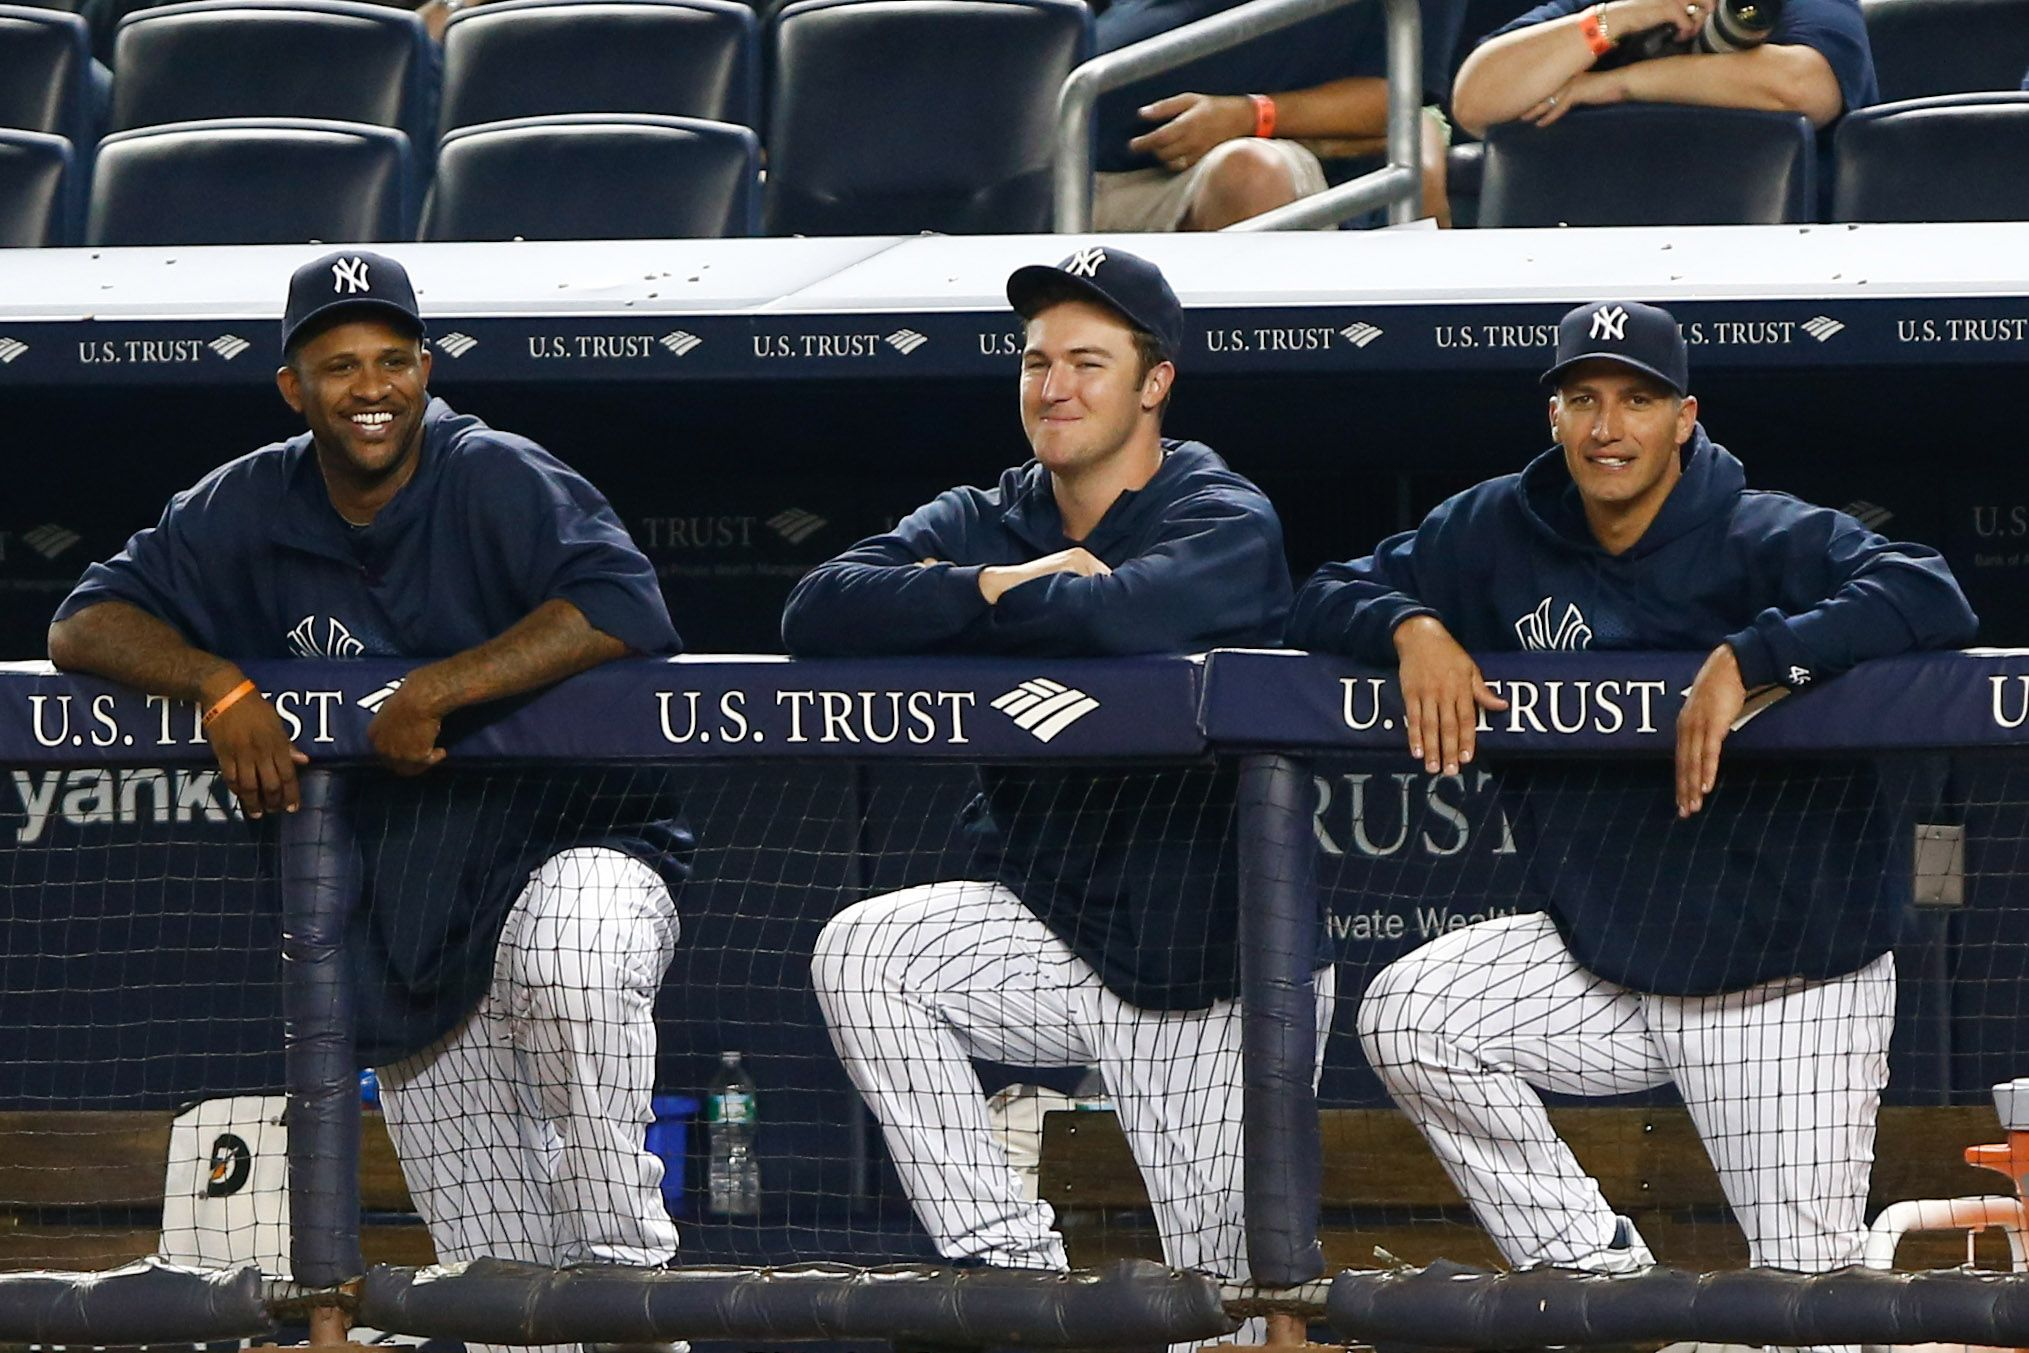 New York Yankees Pitchers Cc Sabathia Phil Hughes And Andy Pettitte Share A Laugh In The Dugout Against The L New York Yankees Yankees Pitchers Andy Pettitte